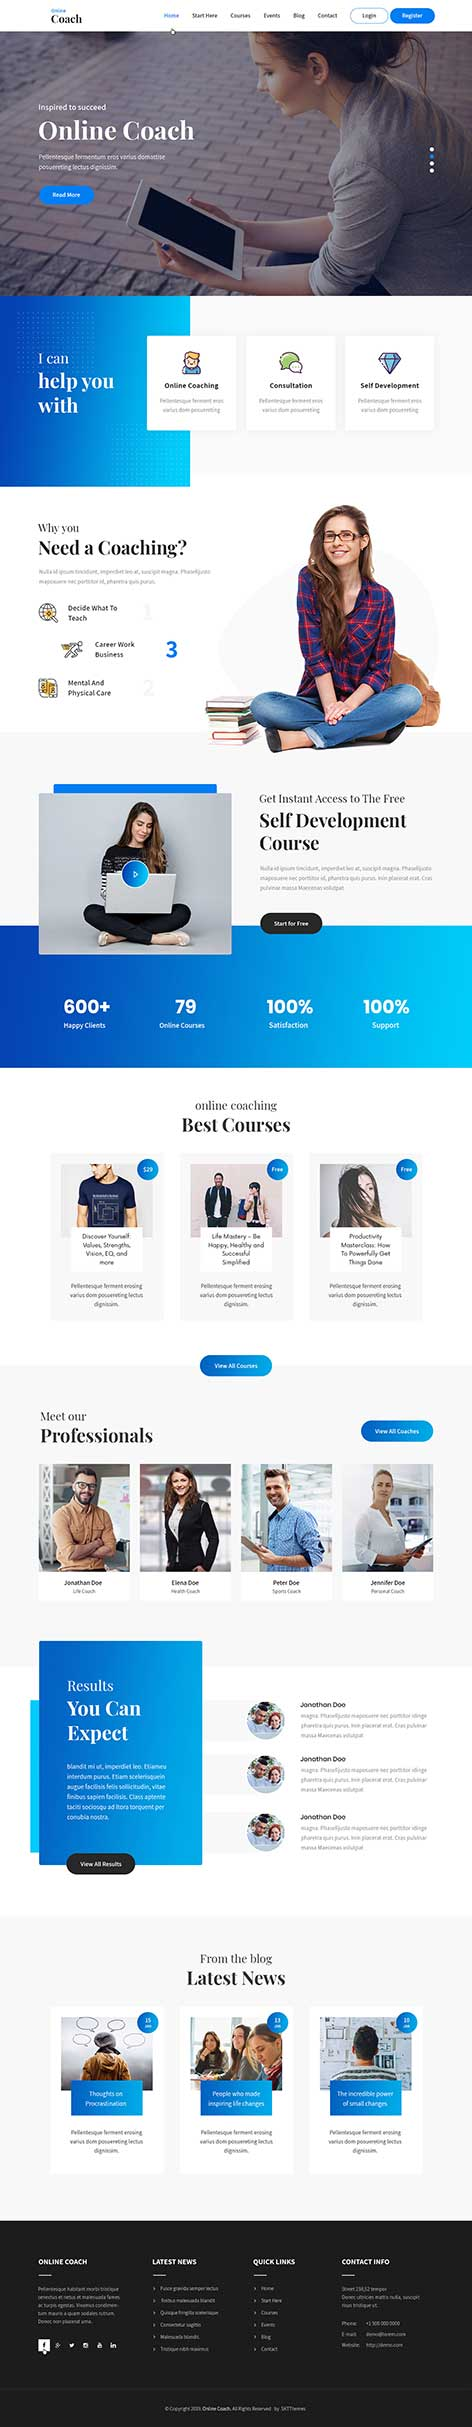 online coach WordPress theme